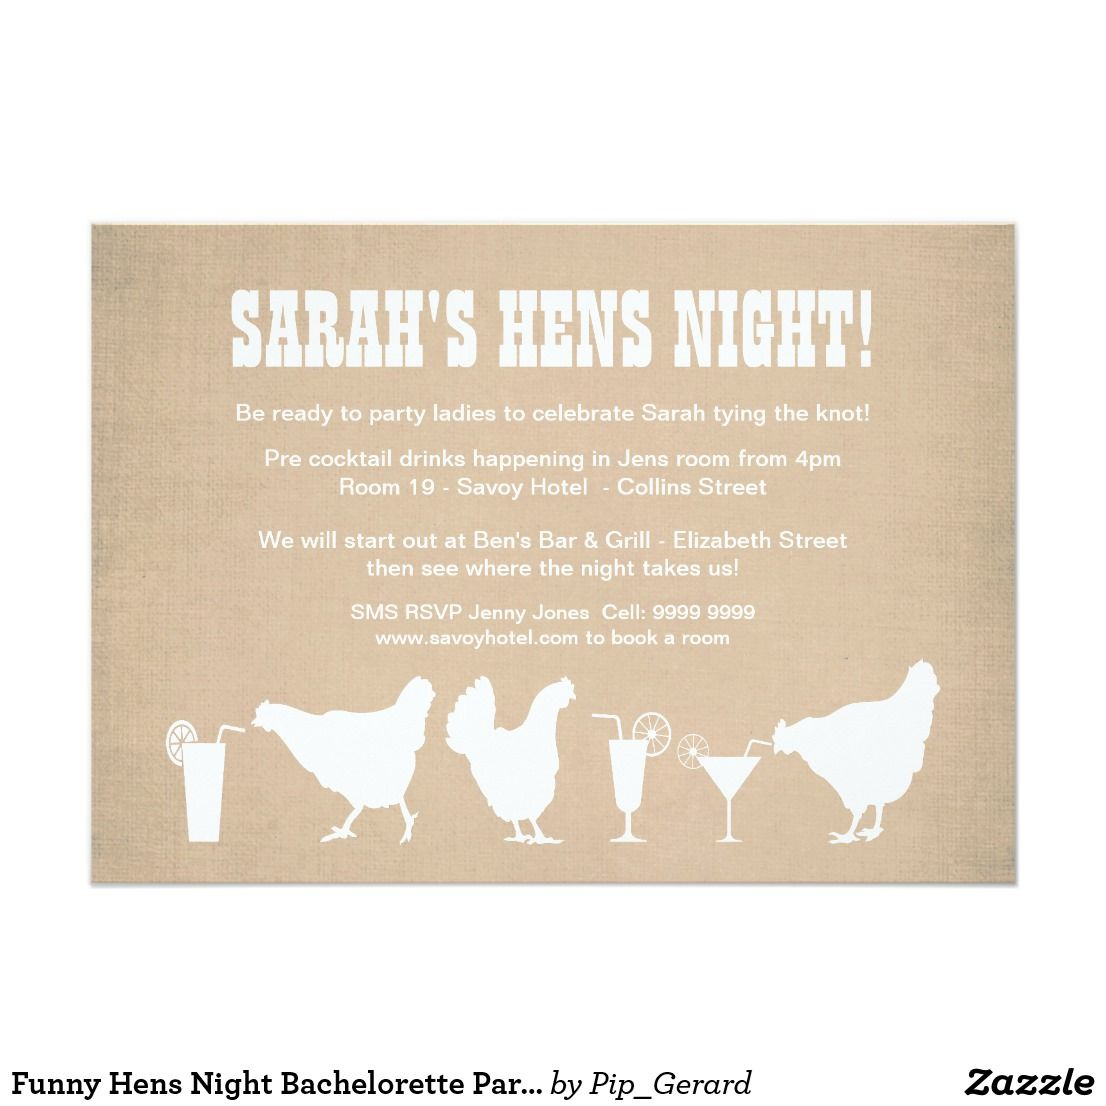 Funny Hens Night Bachelorette Party Invite | Bachelorette Party ...